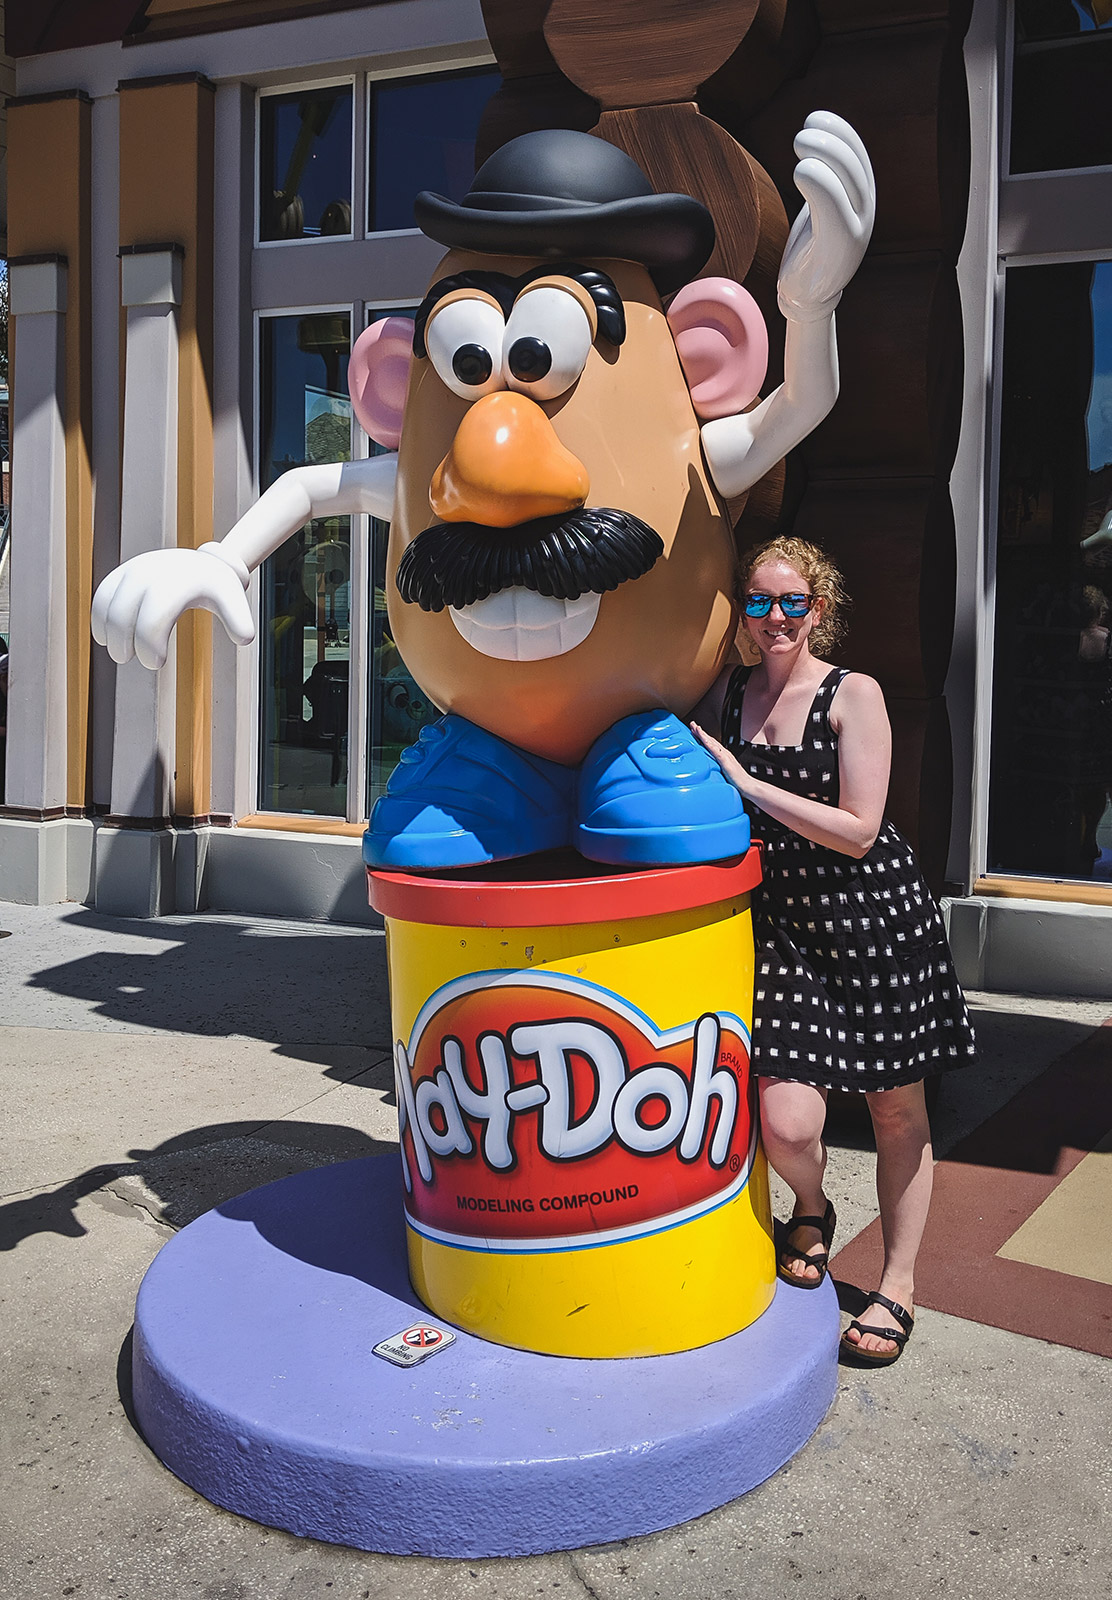 Mr. Potato Head statue